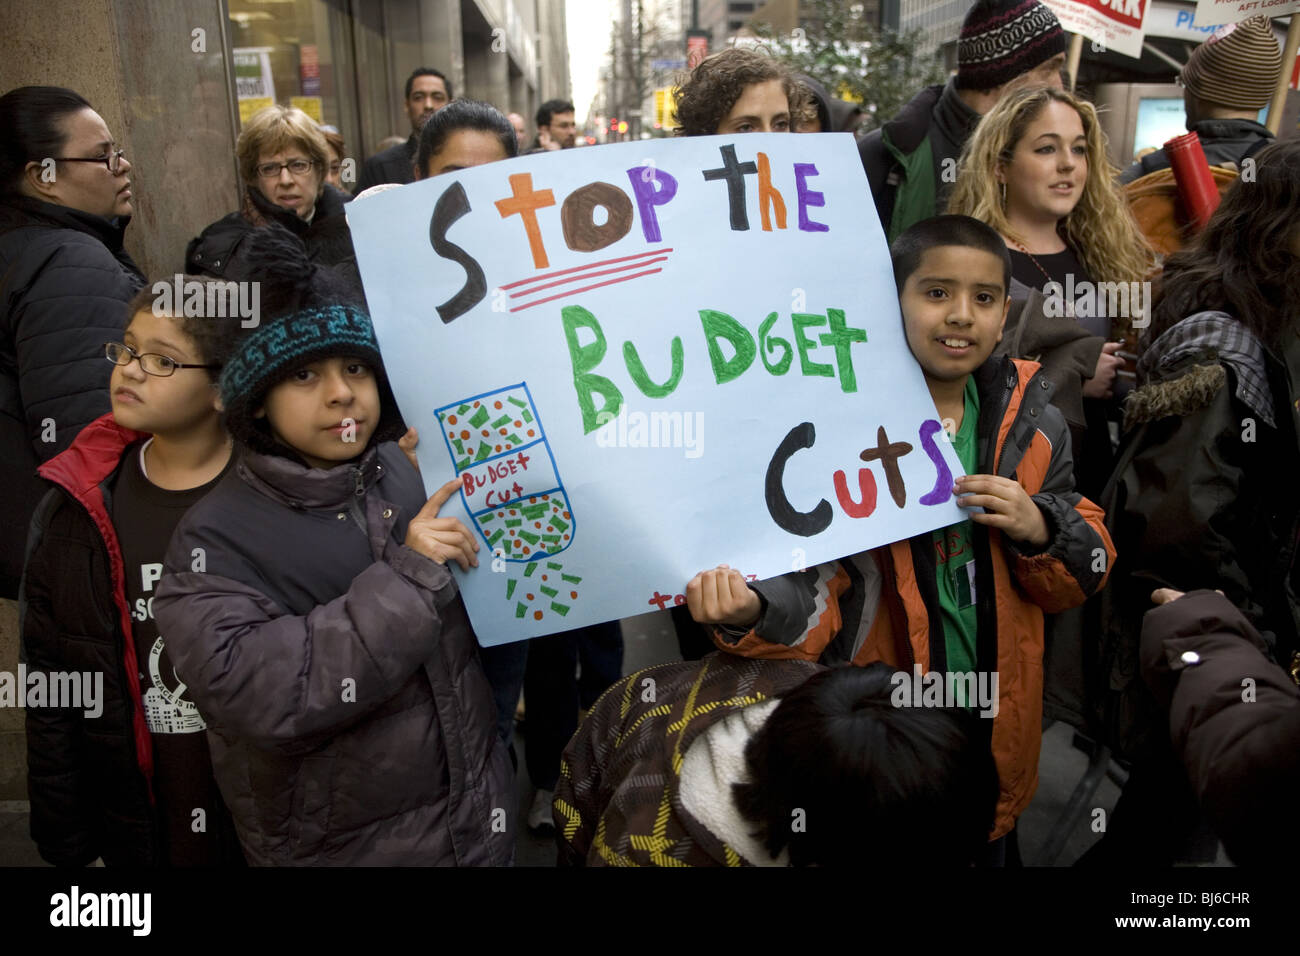 Children with parents and teachers protest budget cuts to education in New York City. - Stock Image